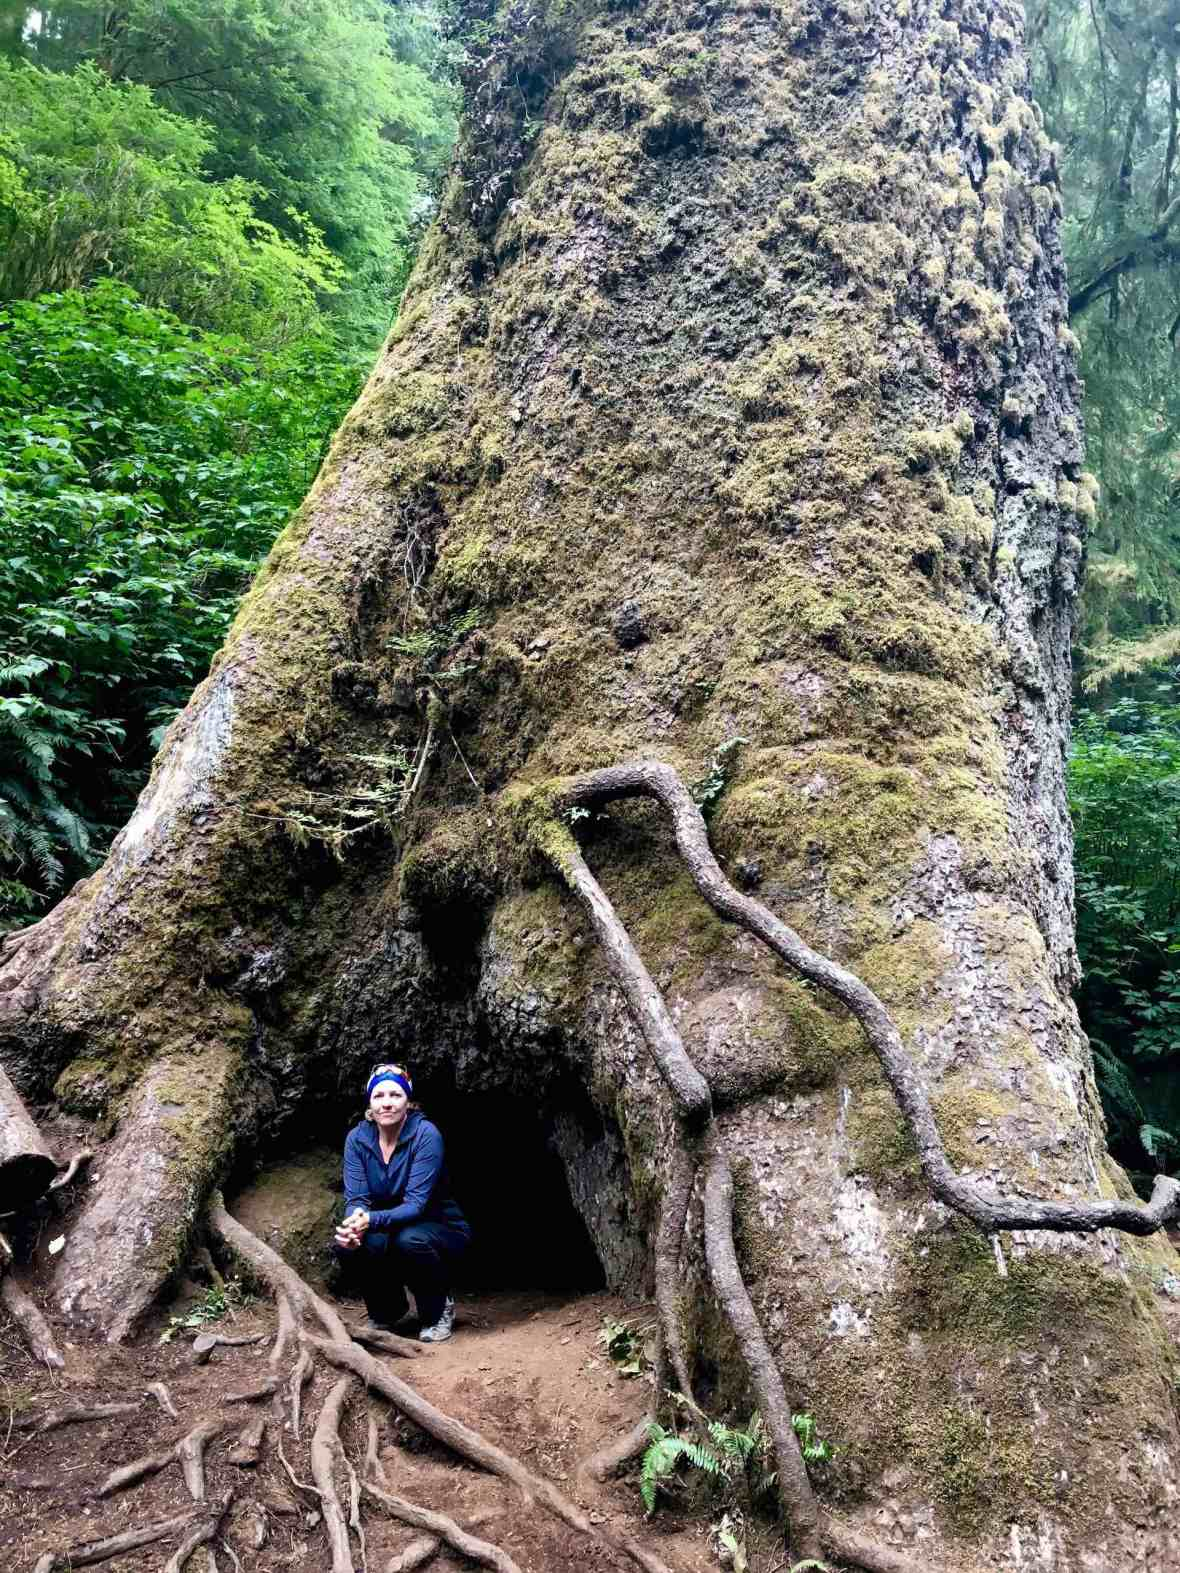 Giant Sitka Spruce at Cape Perpetua Scenic Area